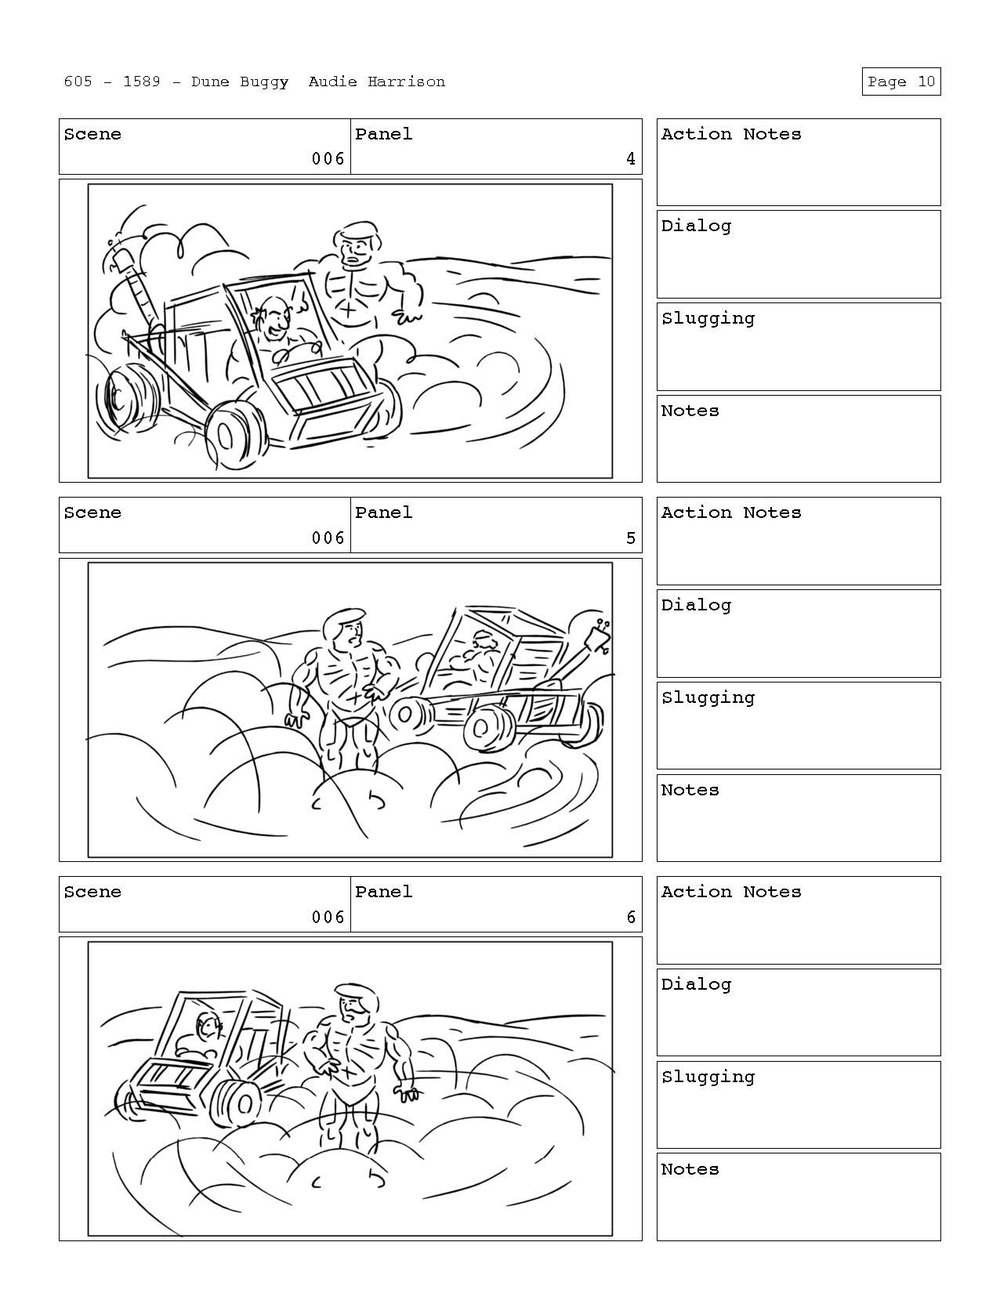 Dune_Buggy_Page_11.jpg